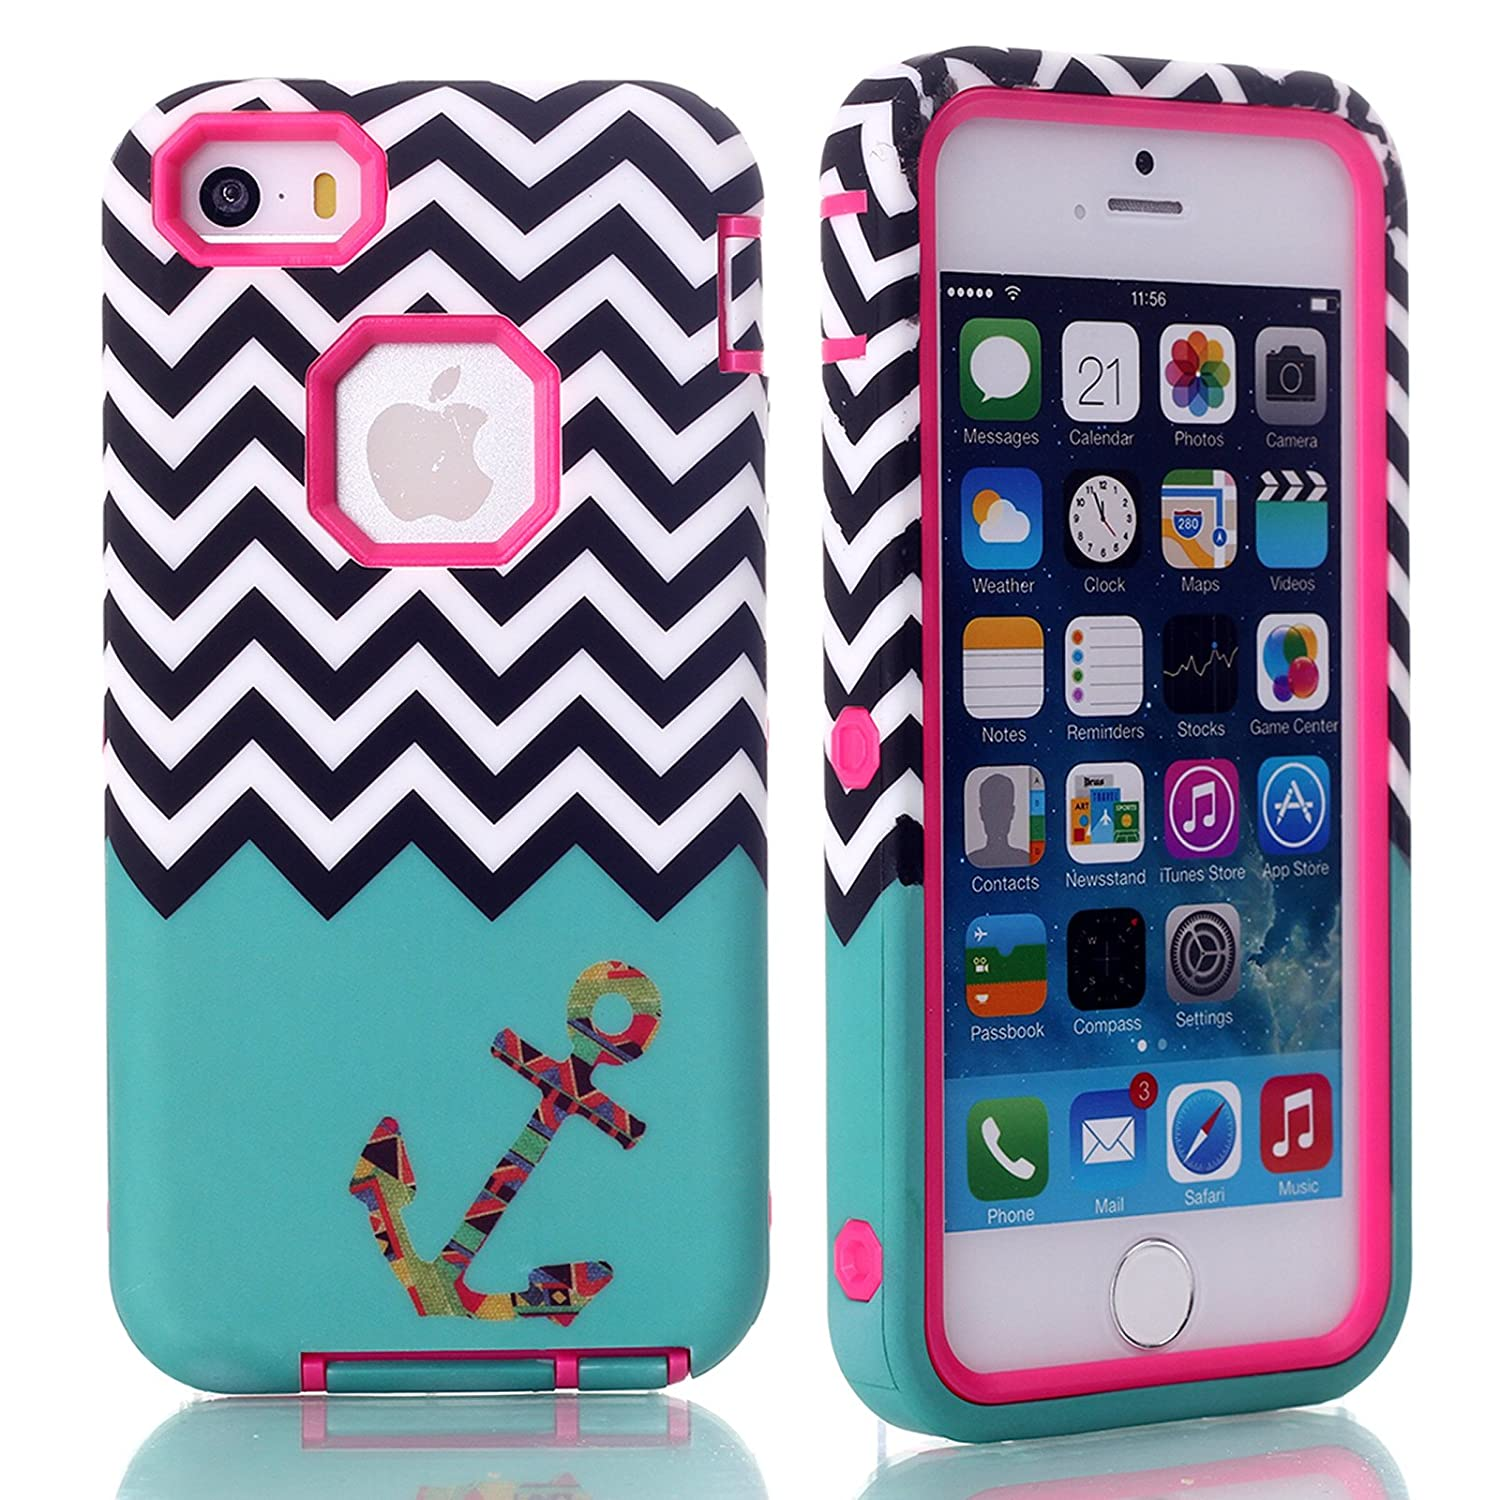 iPhone SE Case, Firefish Armor (Dual Bumper) Slim Fit (PC+Silicone) Rugged Shockproof (B-anchor Series) (Detachable) Shield Case for Apple iPhone SE/5/5S( Not for 5C)+One stylus-Rose